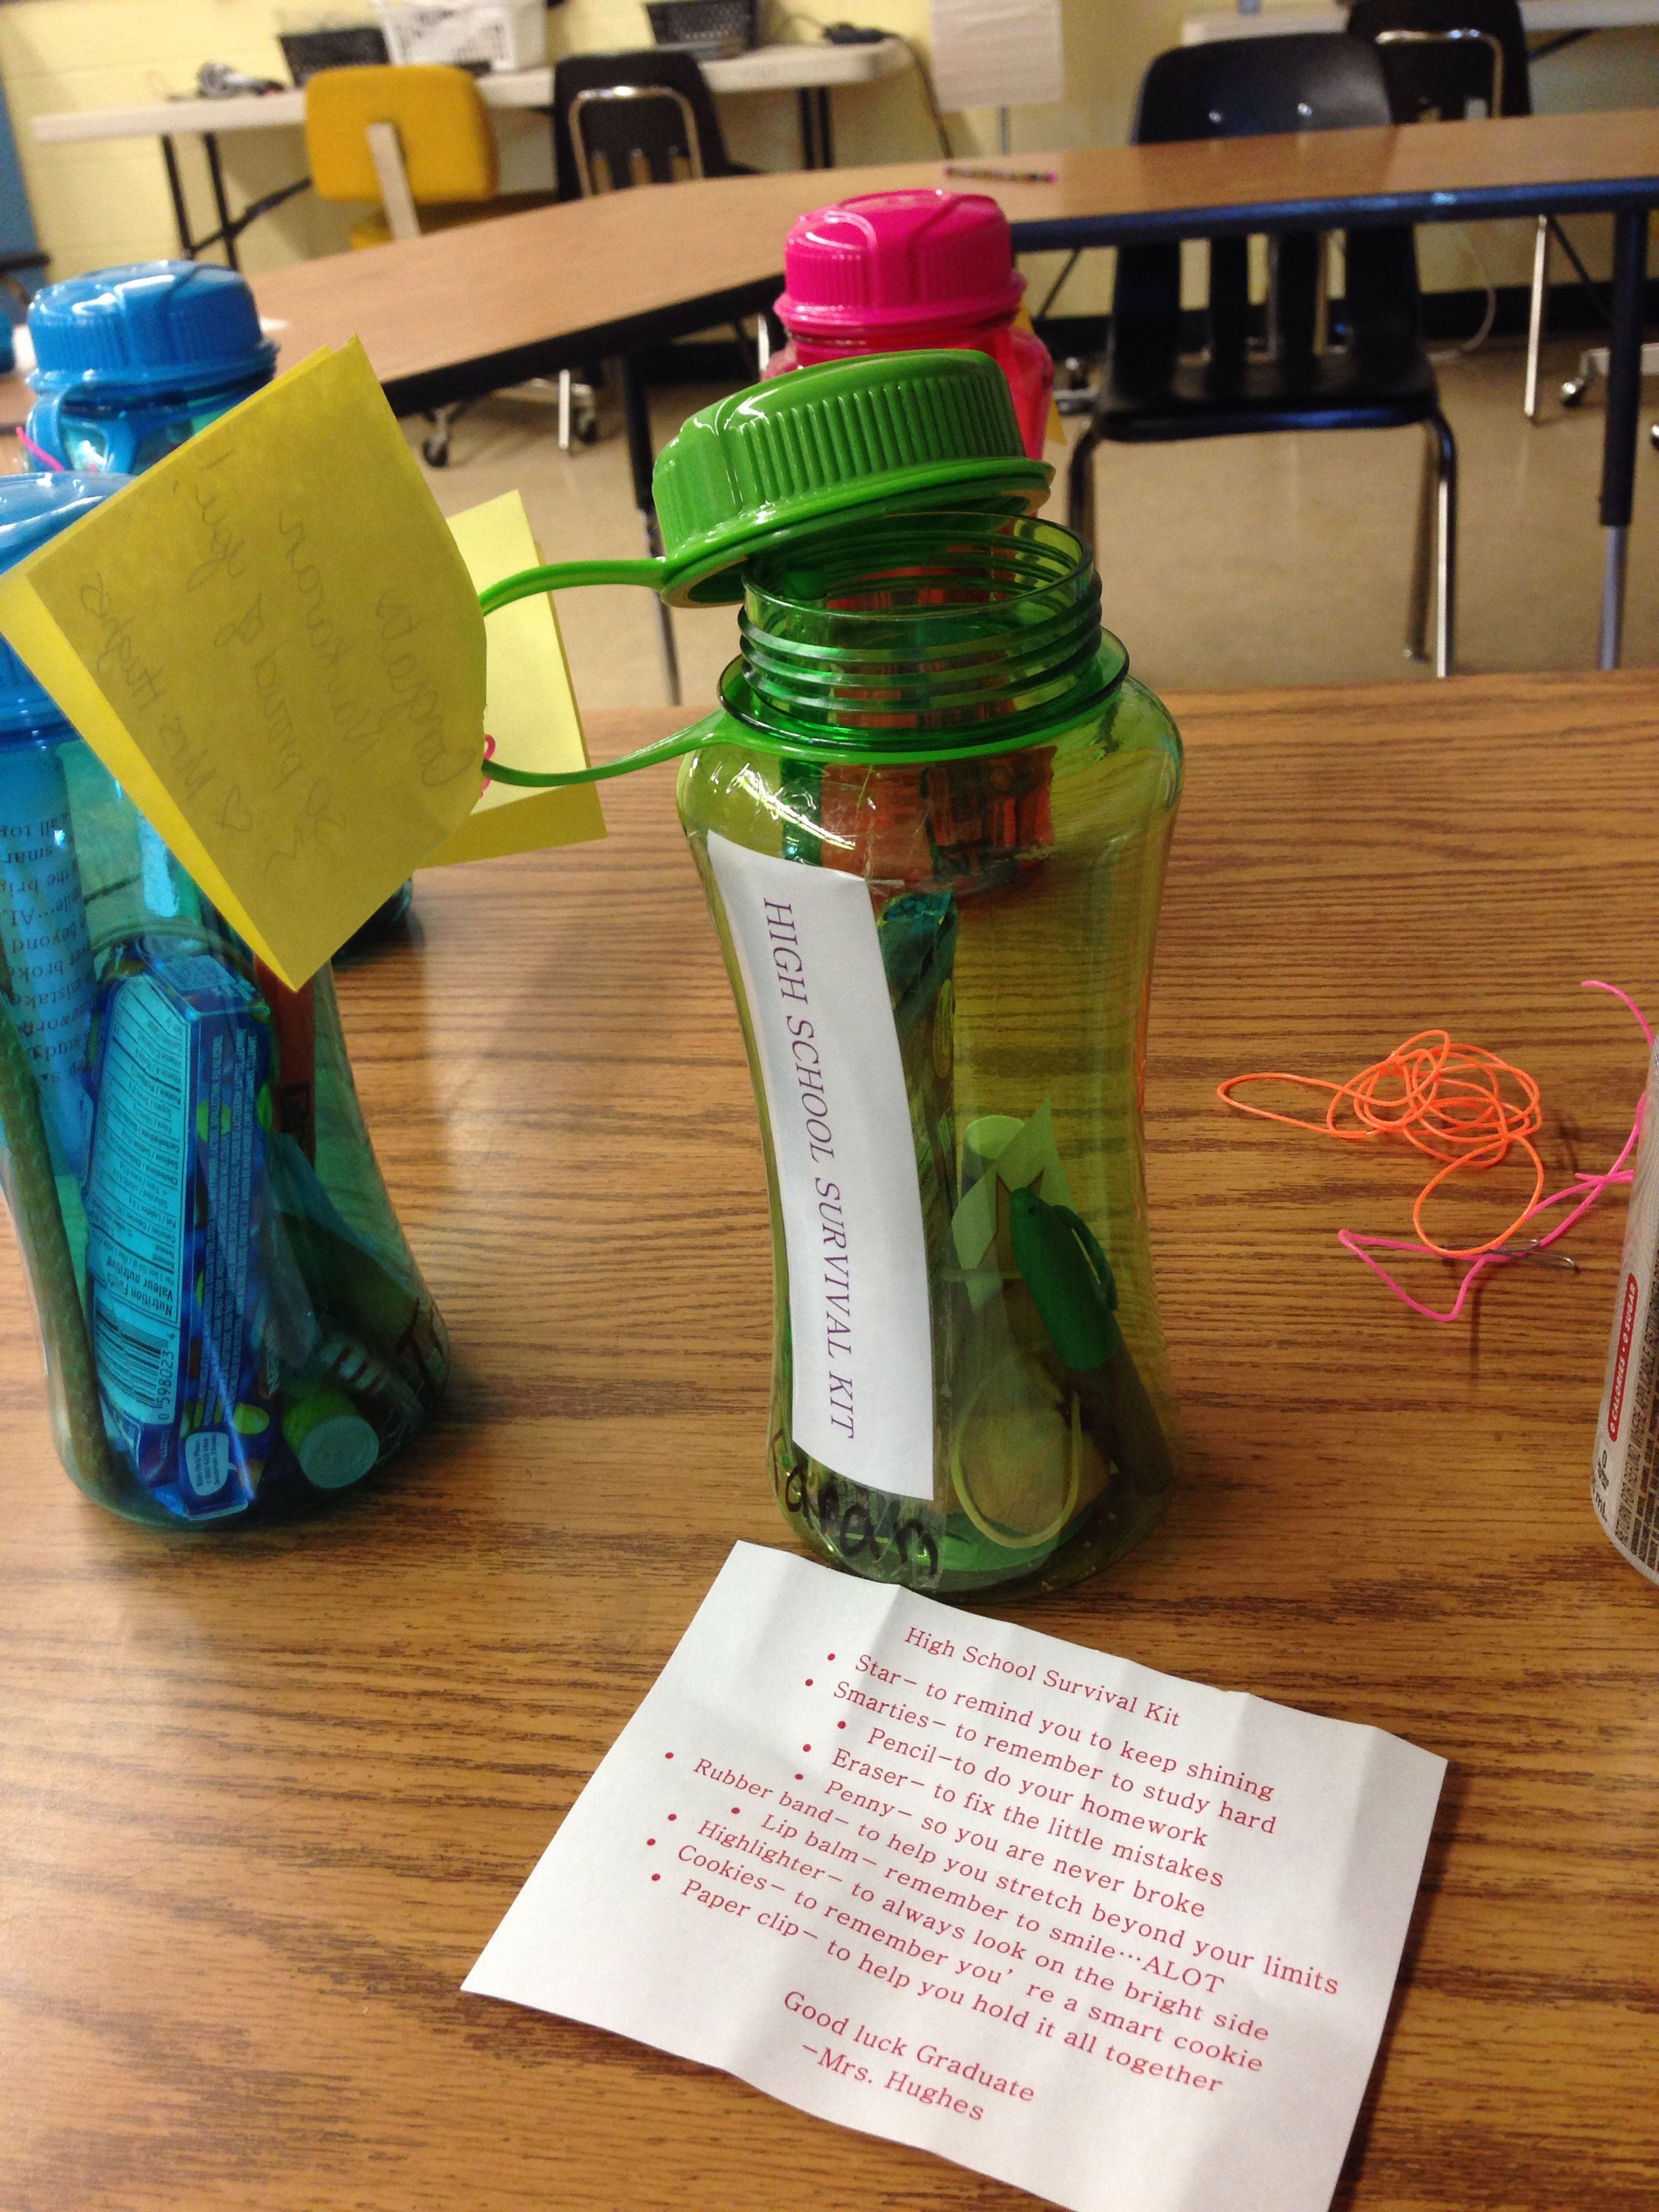 High school survival kit crafts pinterest school - Graduation gift for interior design student ...